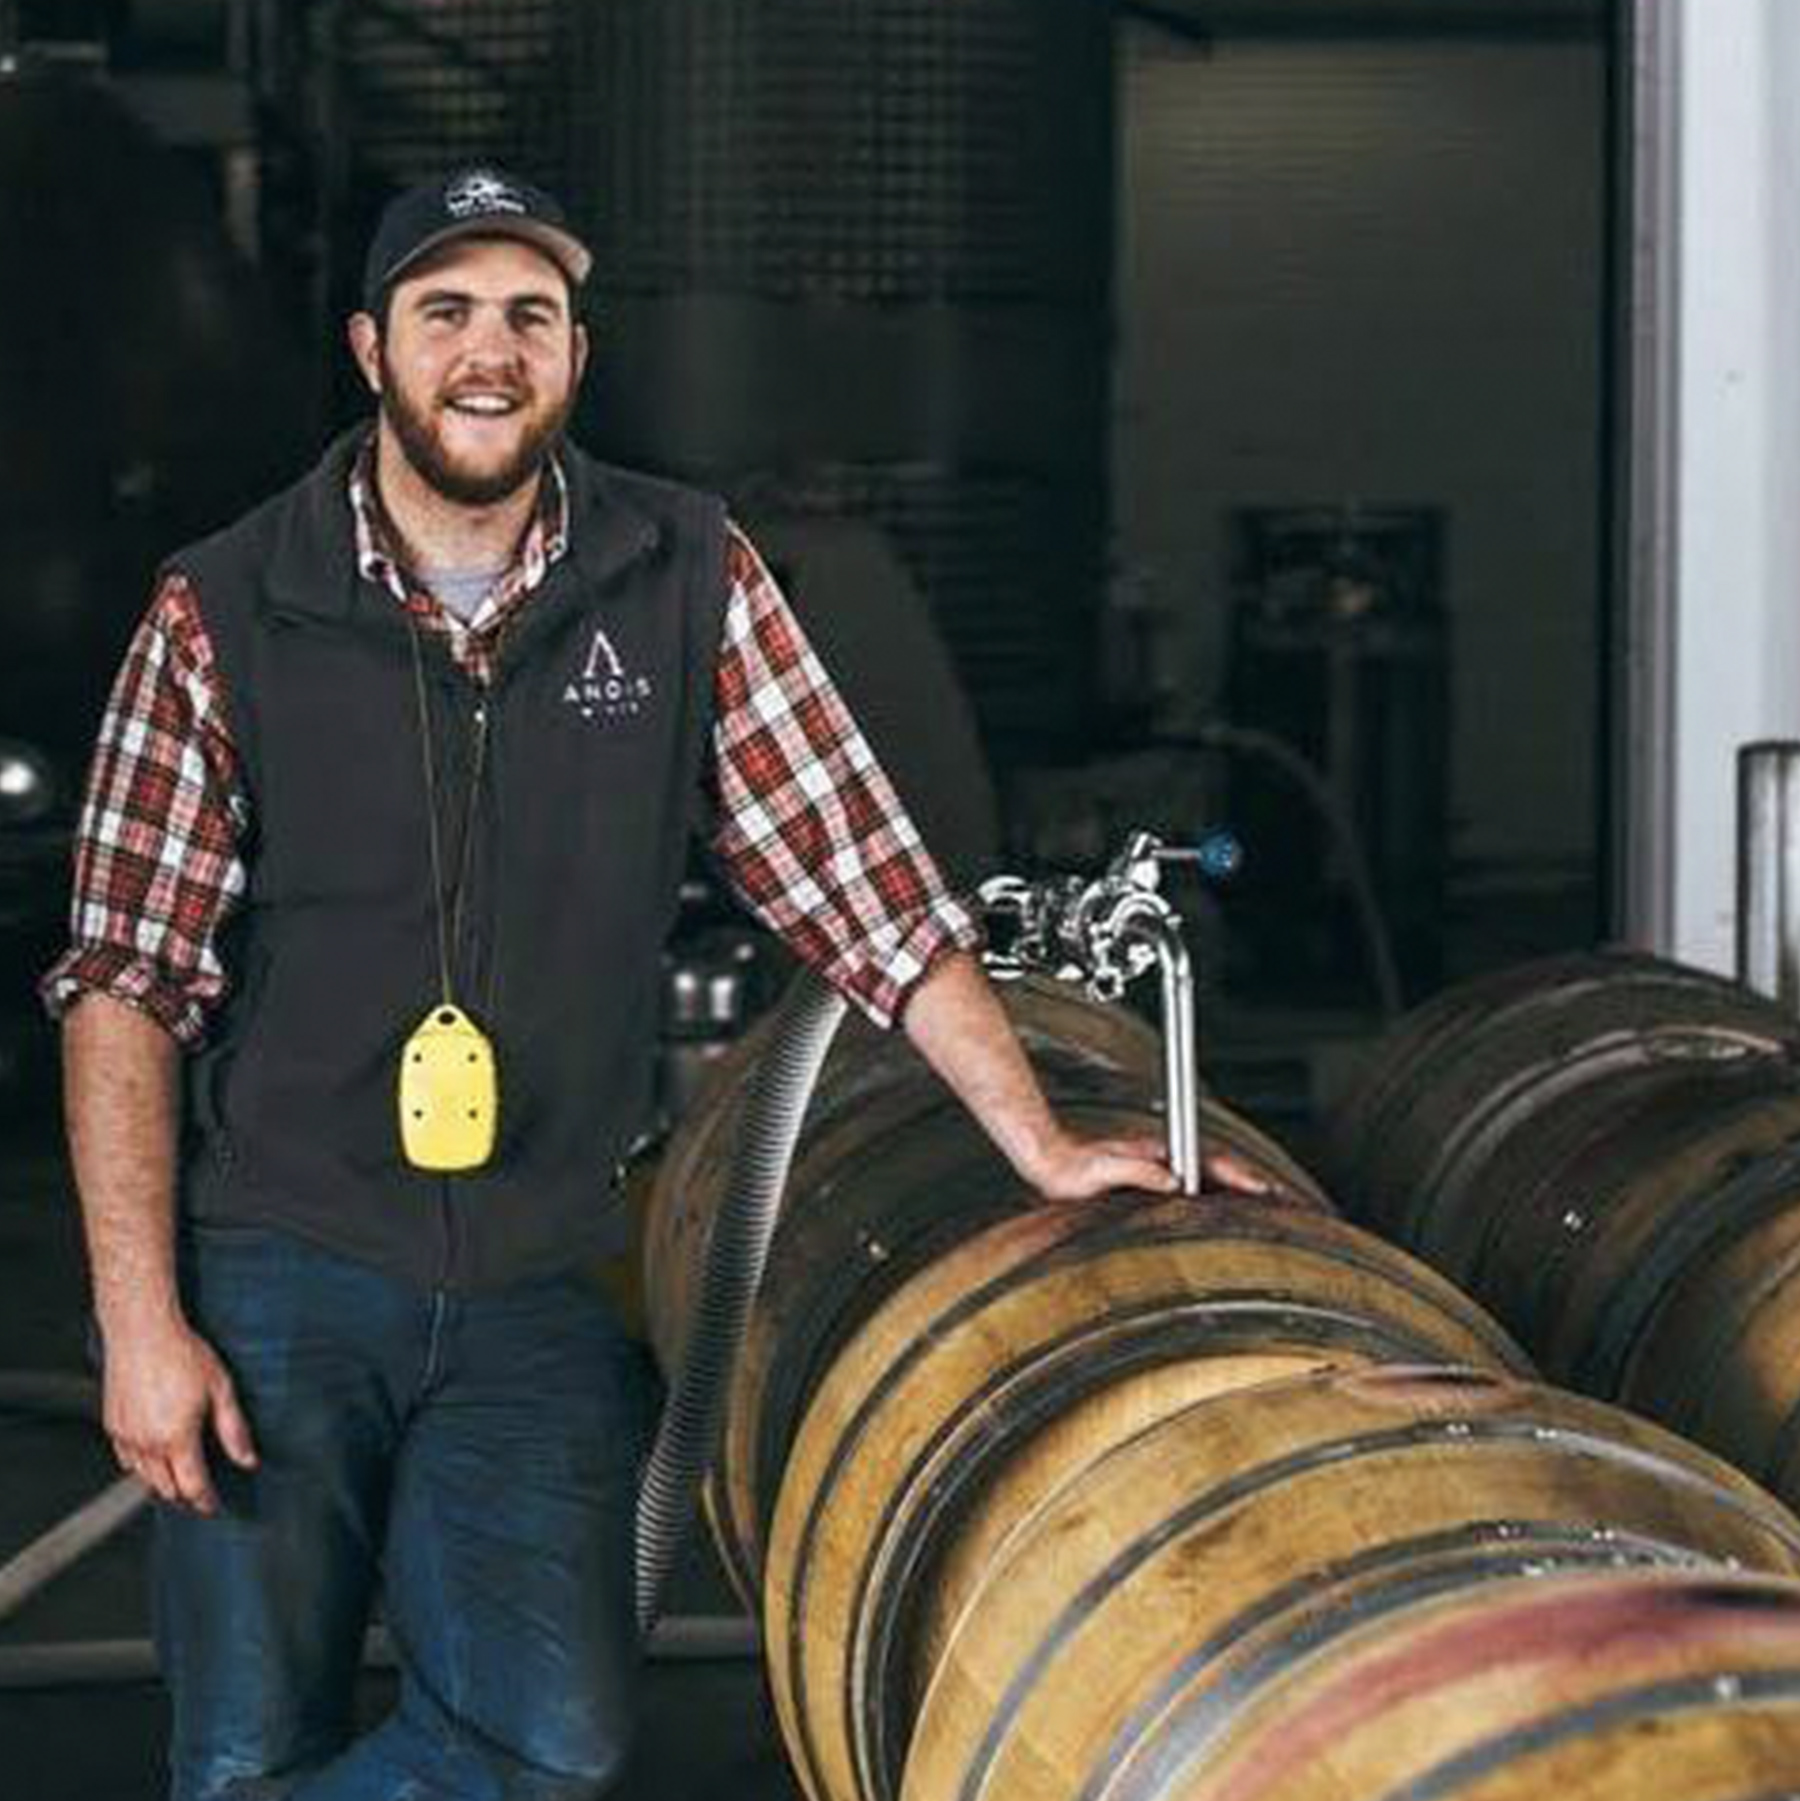 Eric Hildreth / Assistant Winemaker